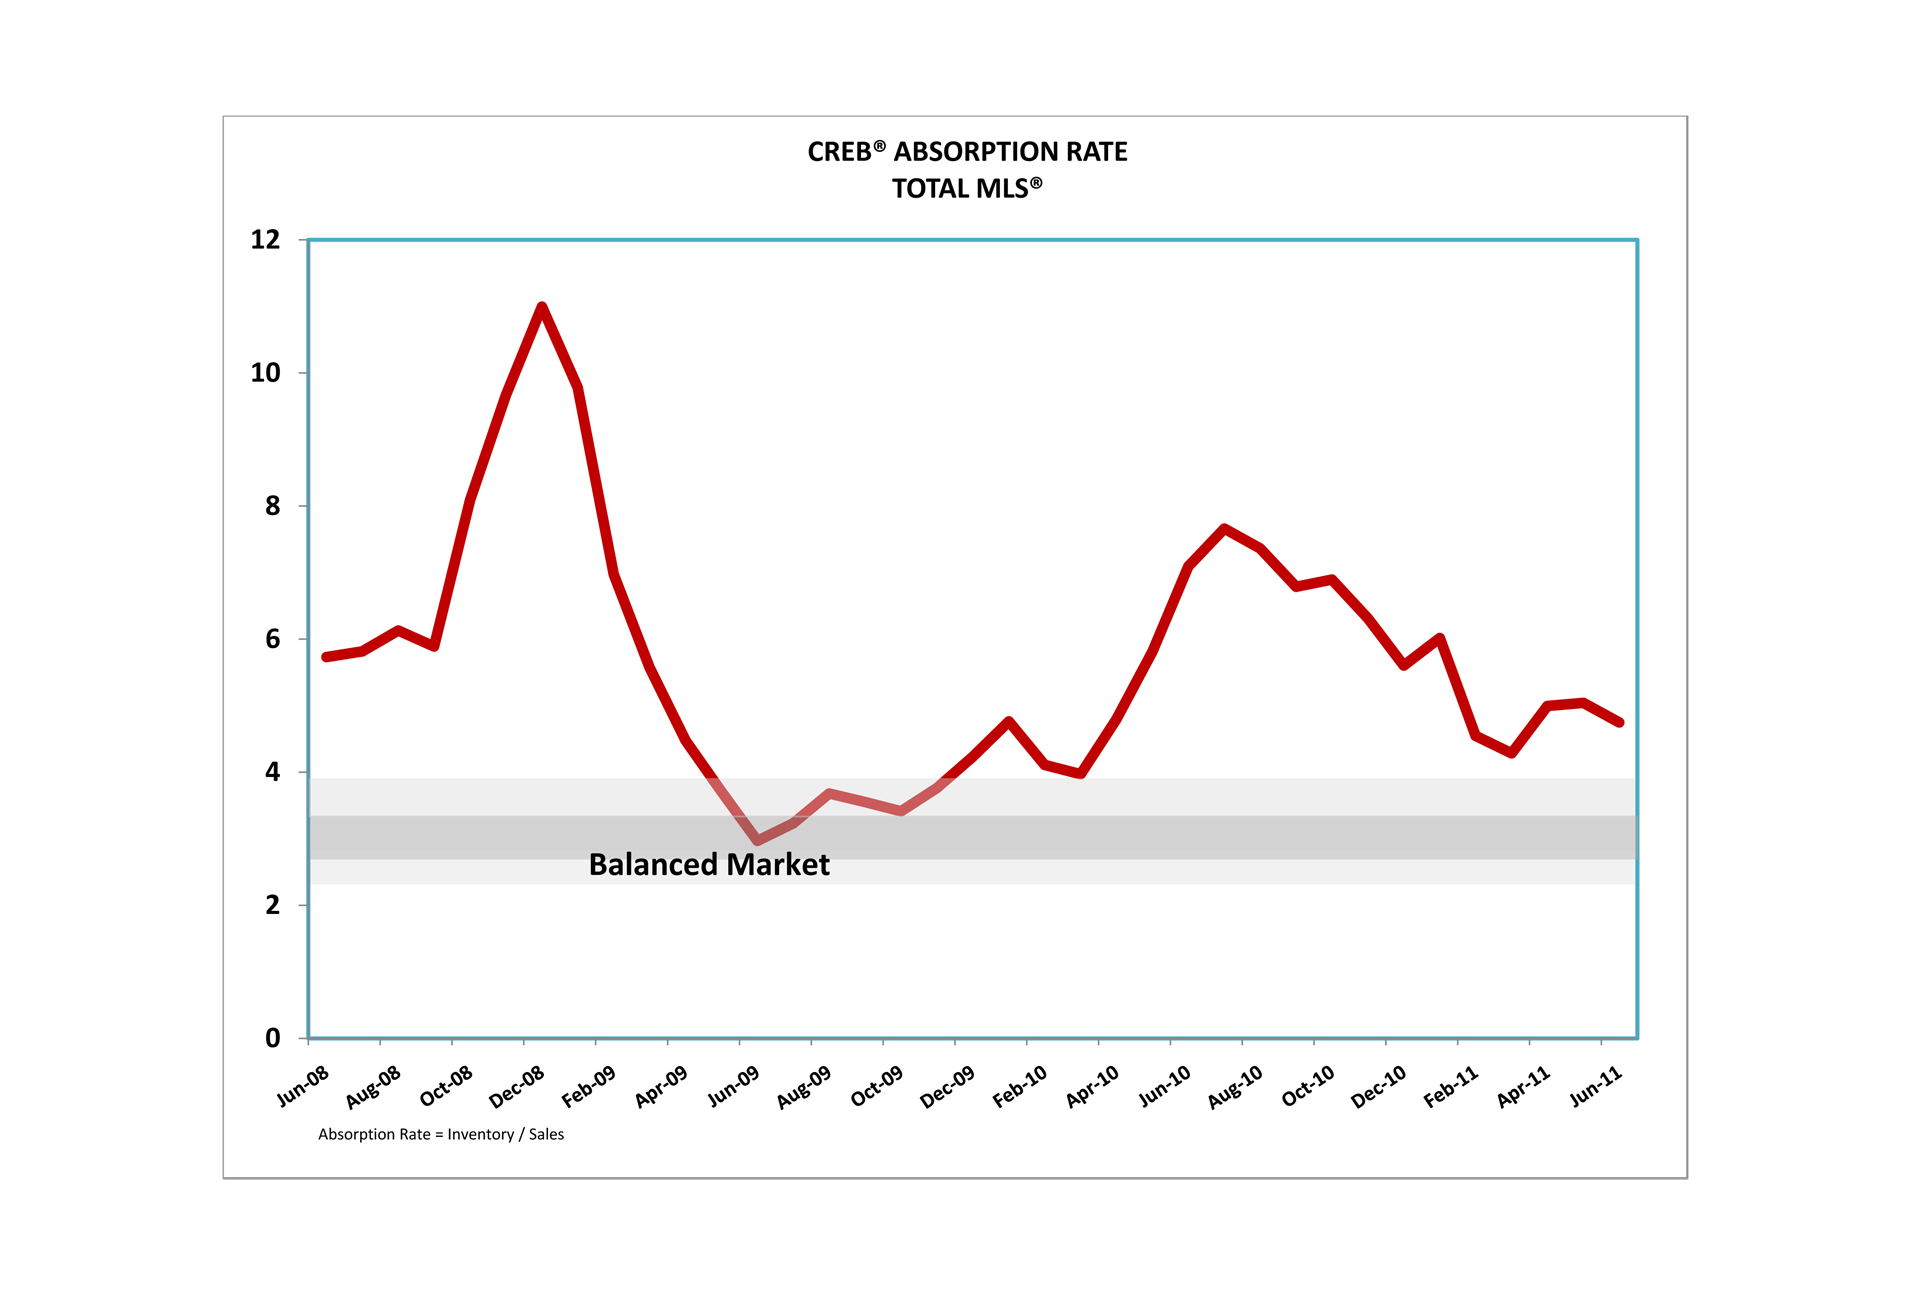 calgary real estate board june 2011 absorption rate